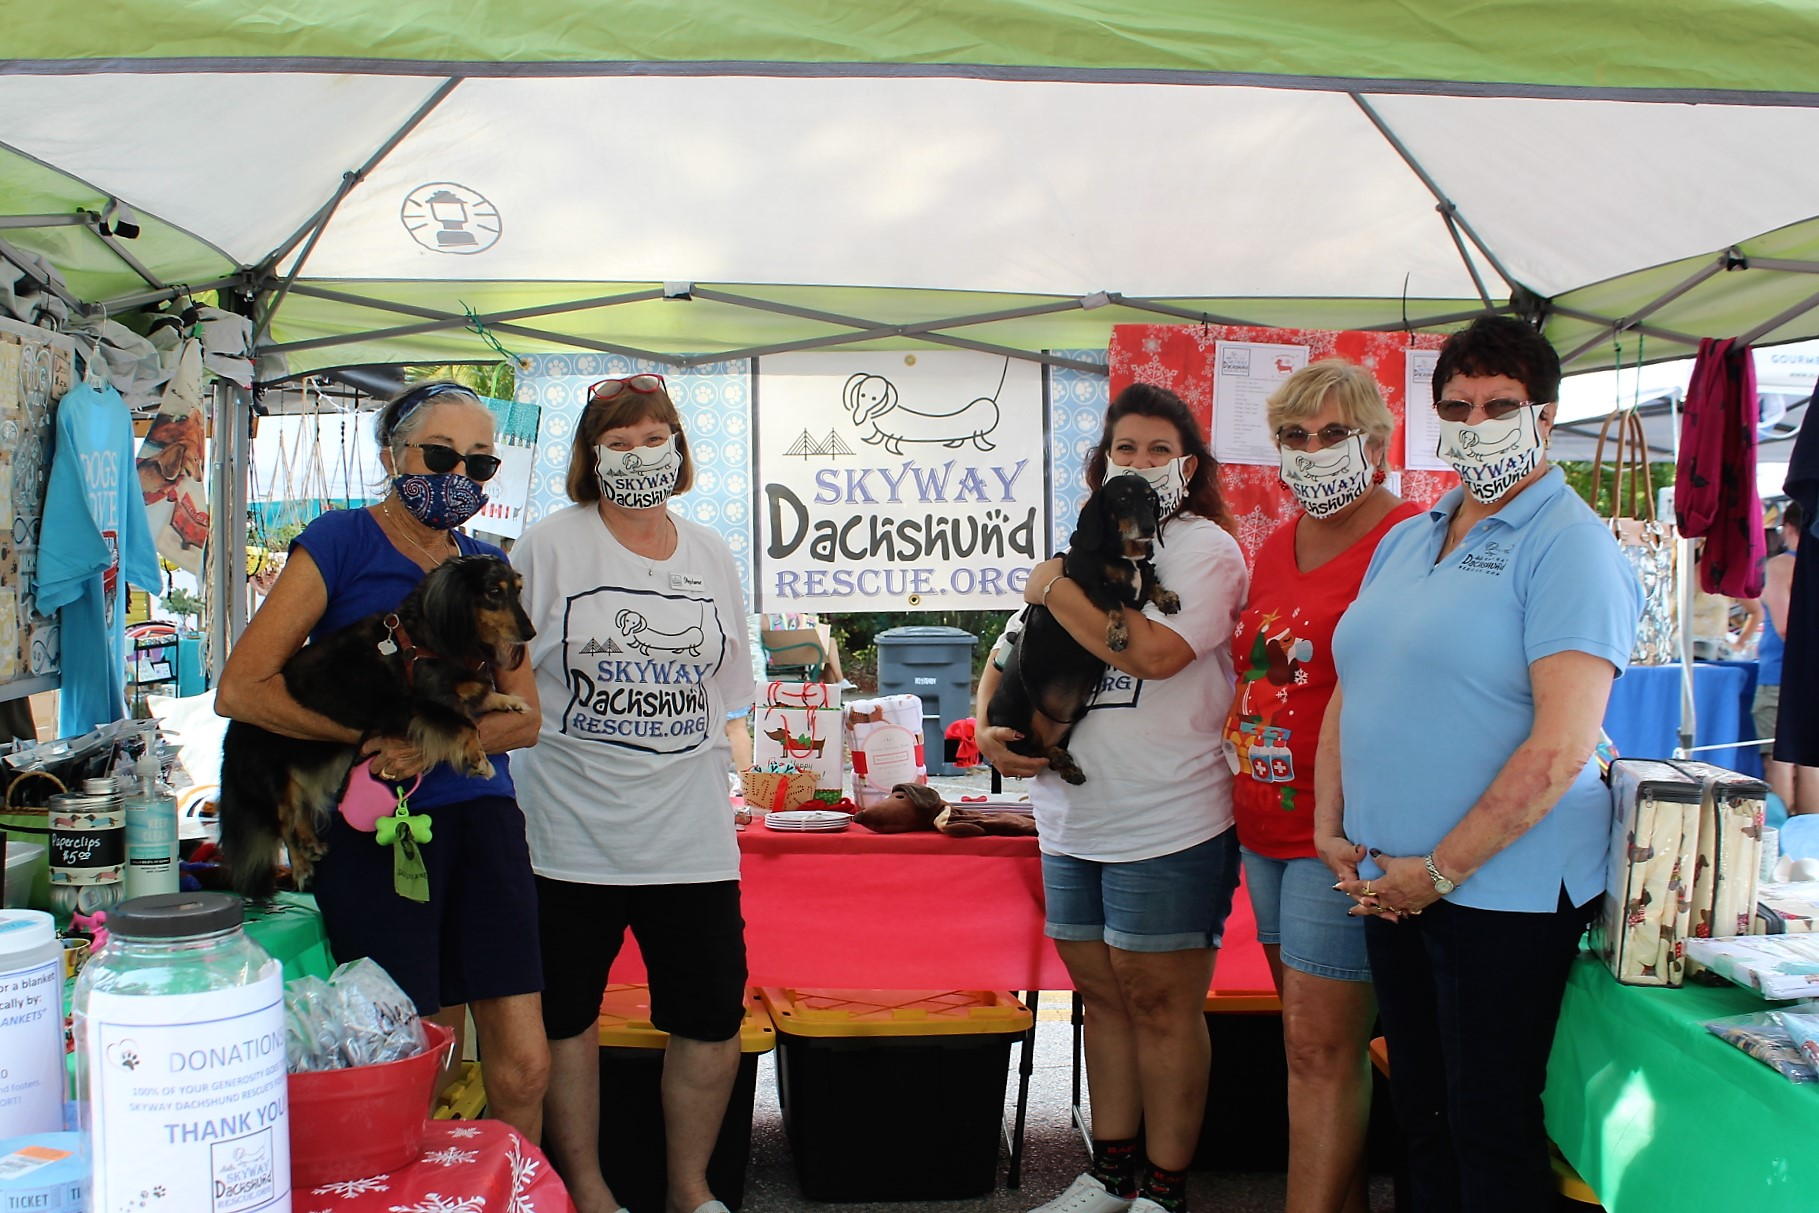 A group of people in a tent wearing face masks with a dachshund